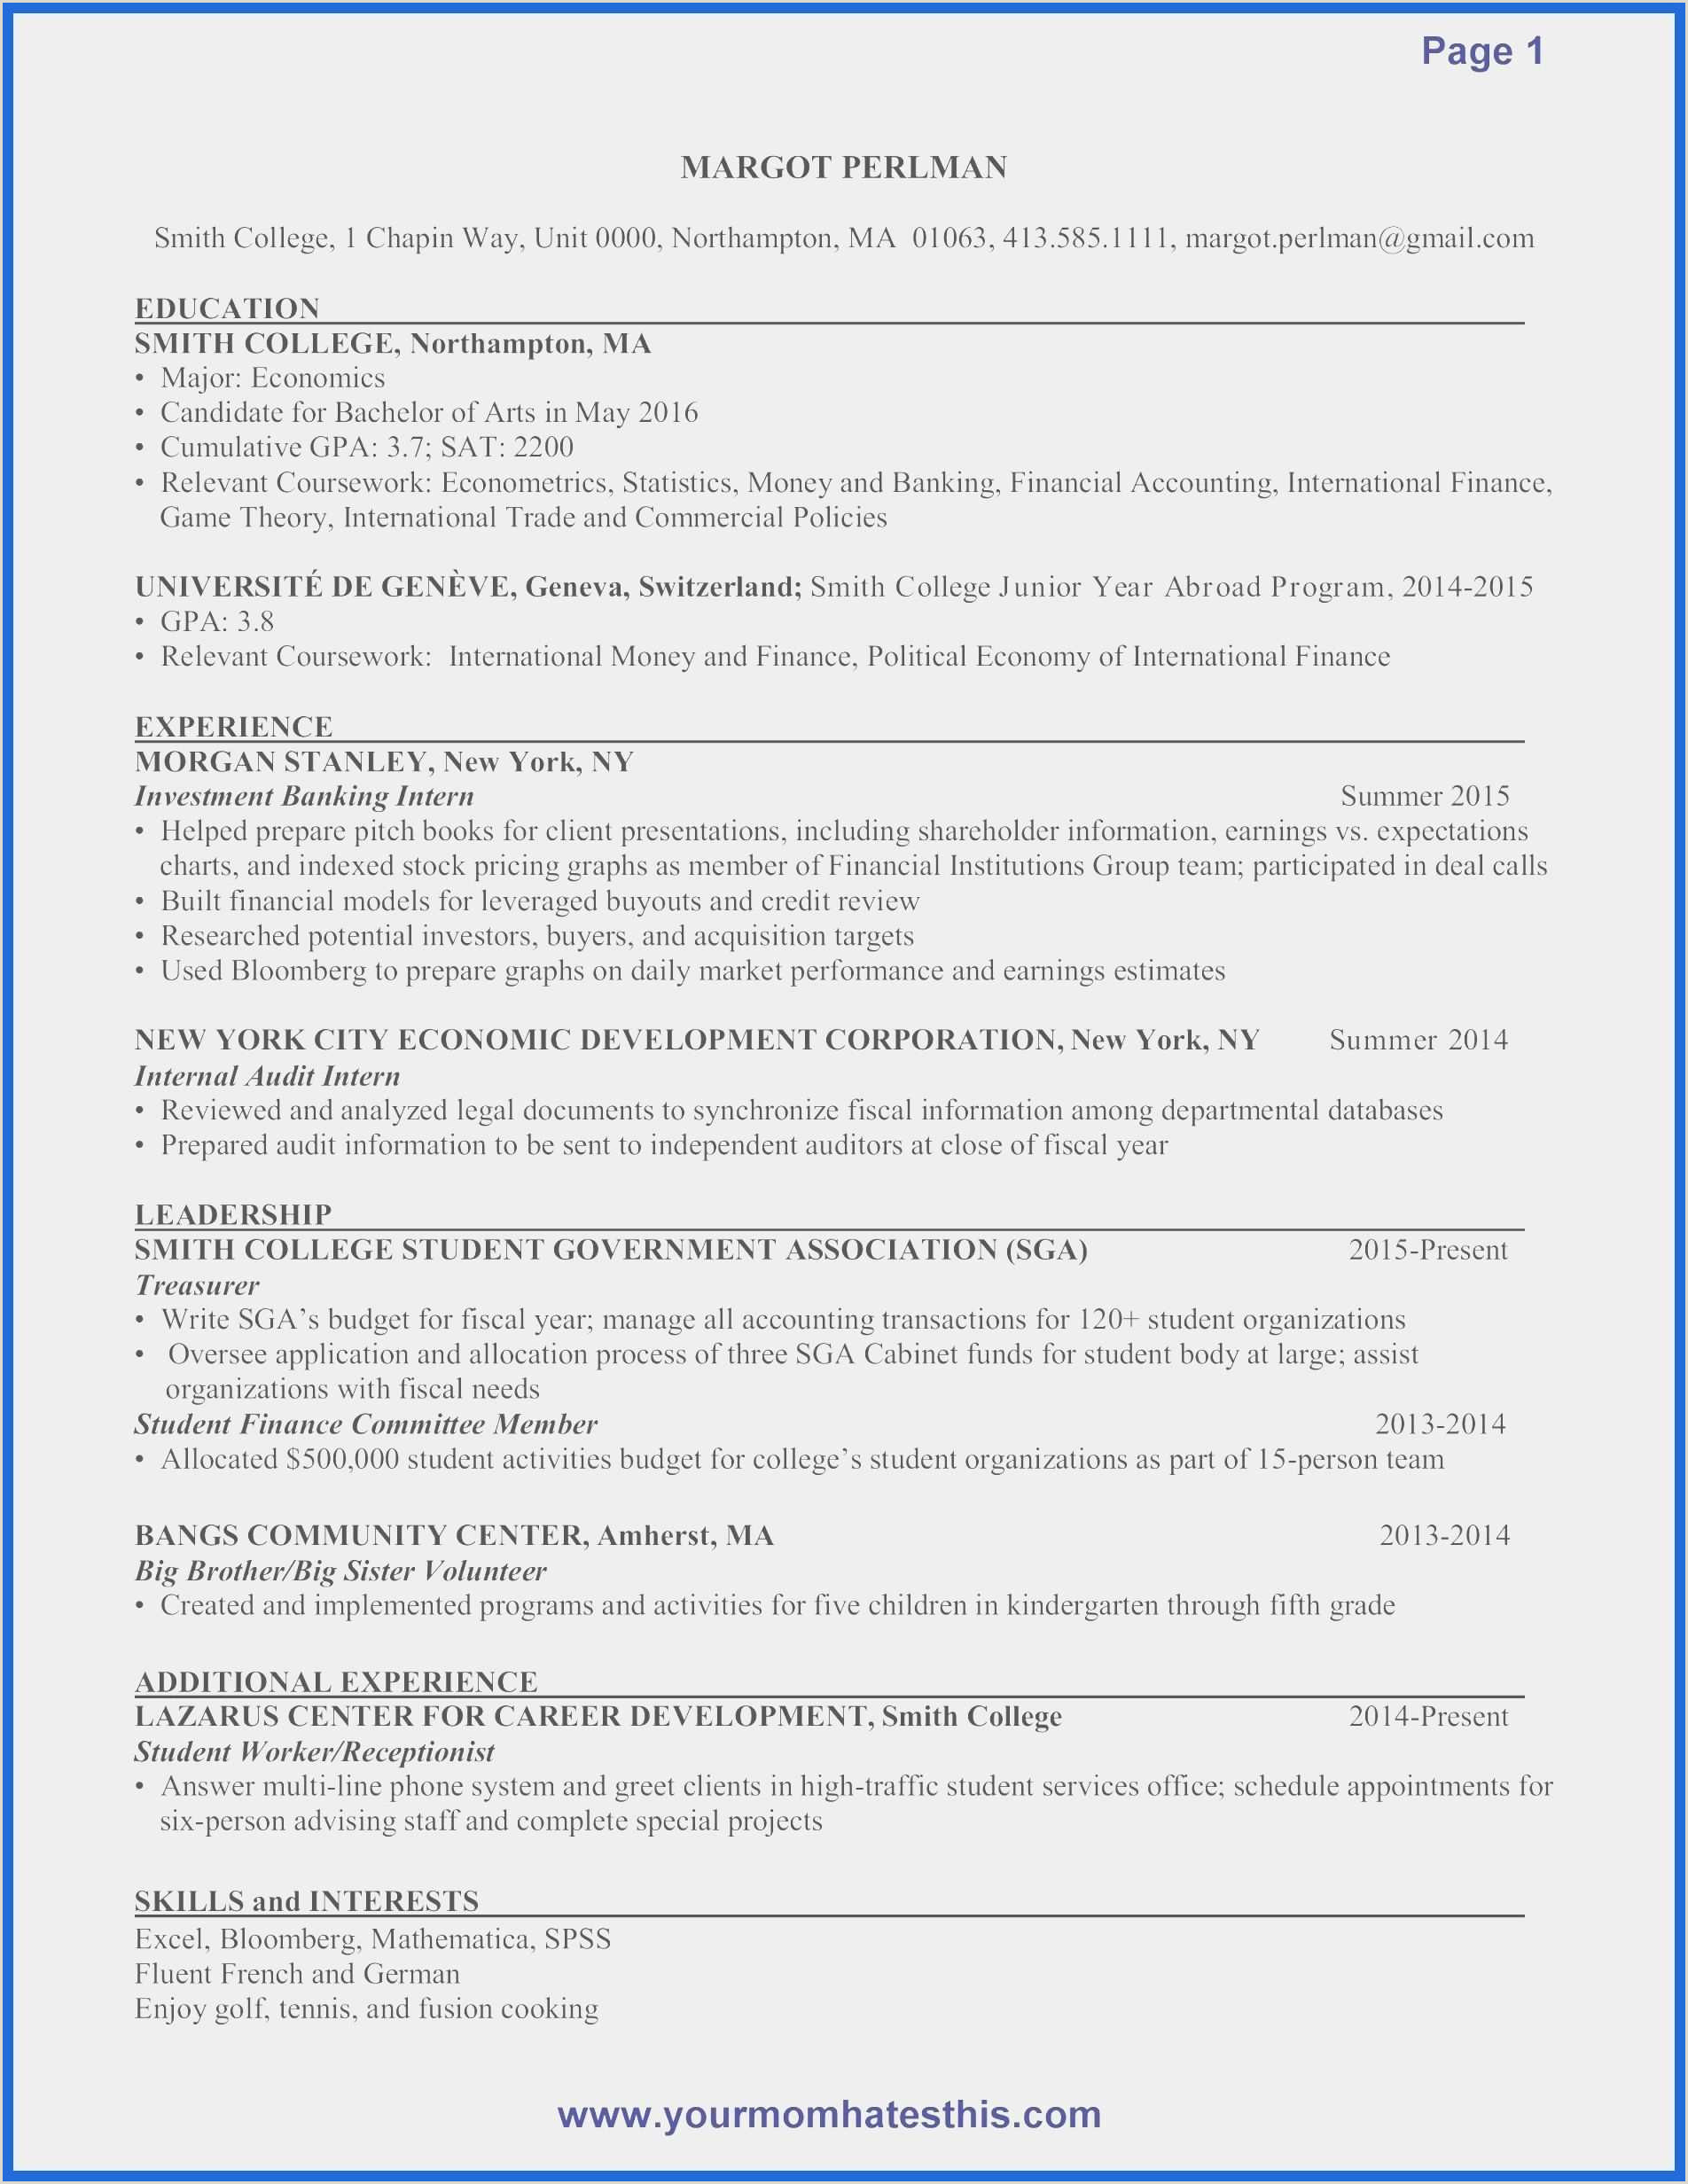 Standard Cv format for Accountant Cv Models Gratuit ¢†¶ 37 Resume Email Subject Ekla Kerlann